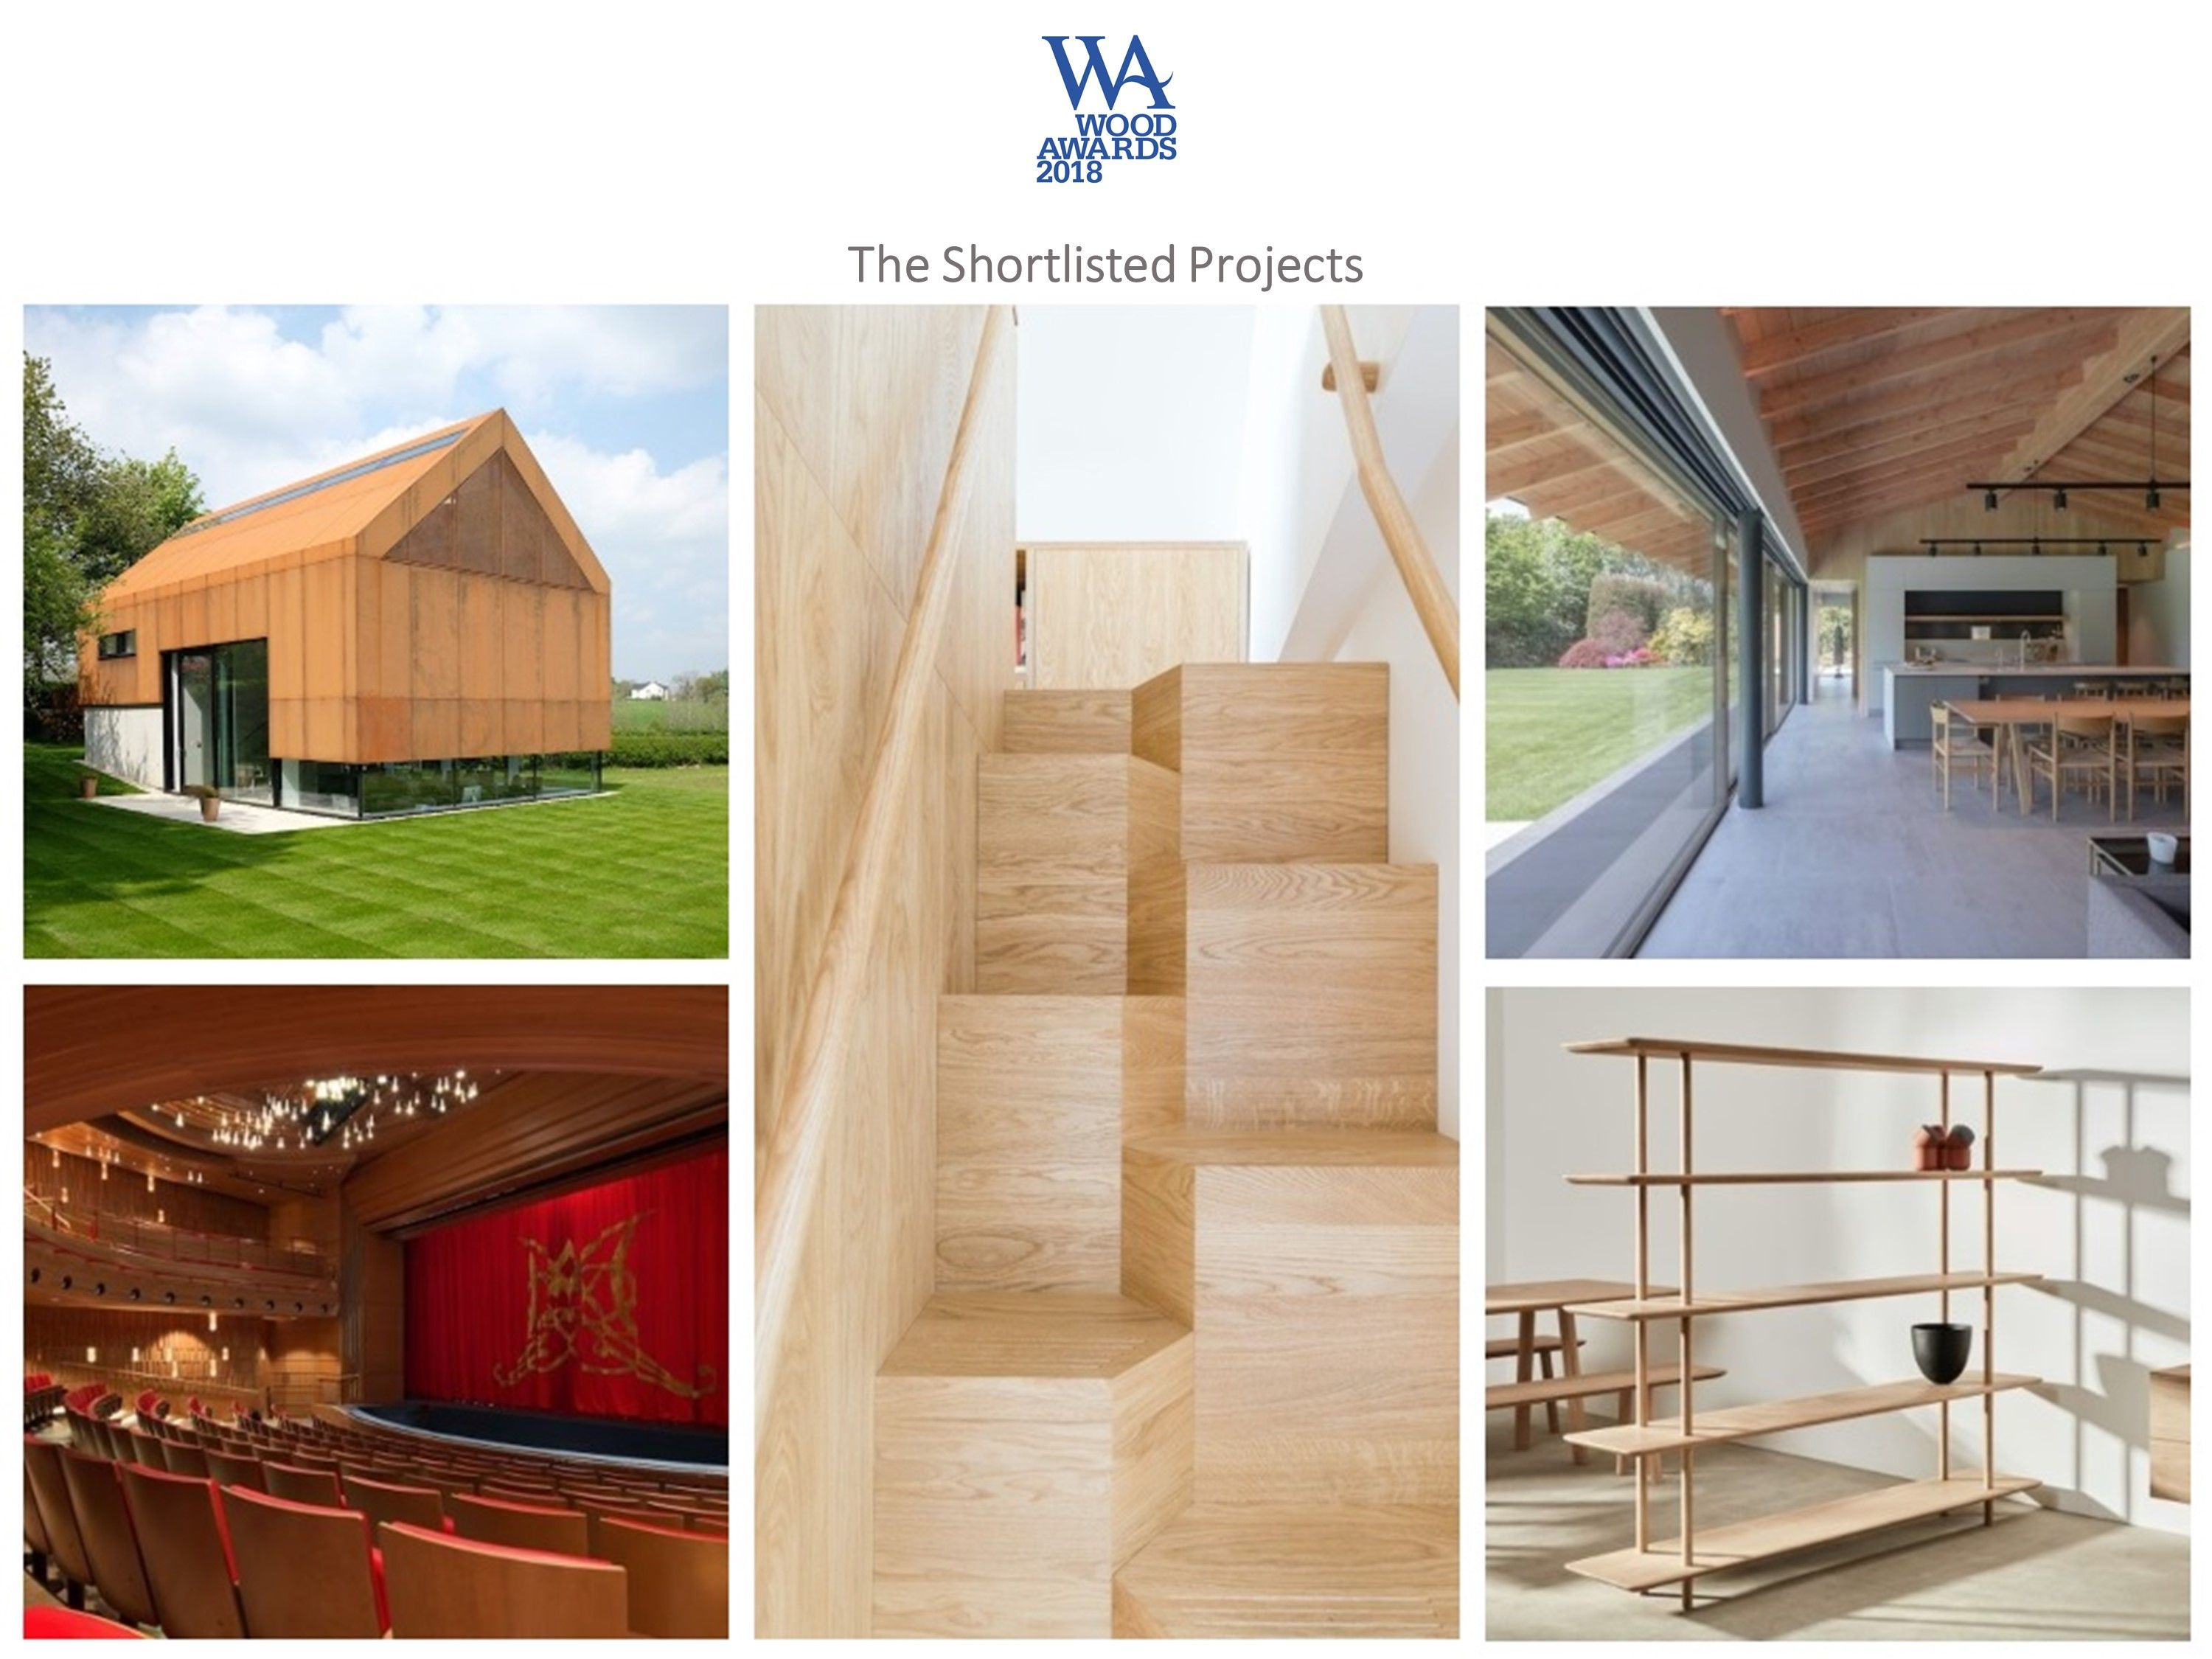 Wood Awards 2018 - Shortlisted projects